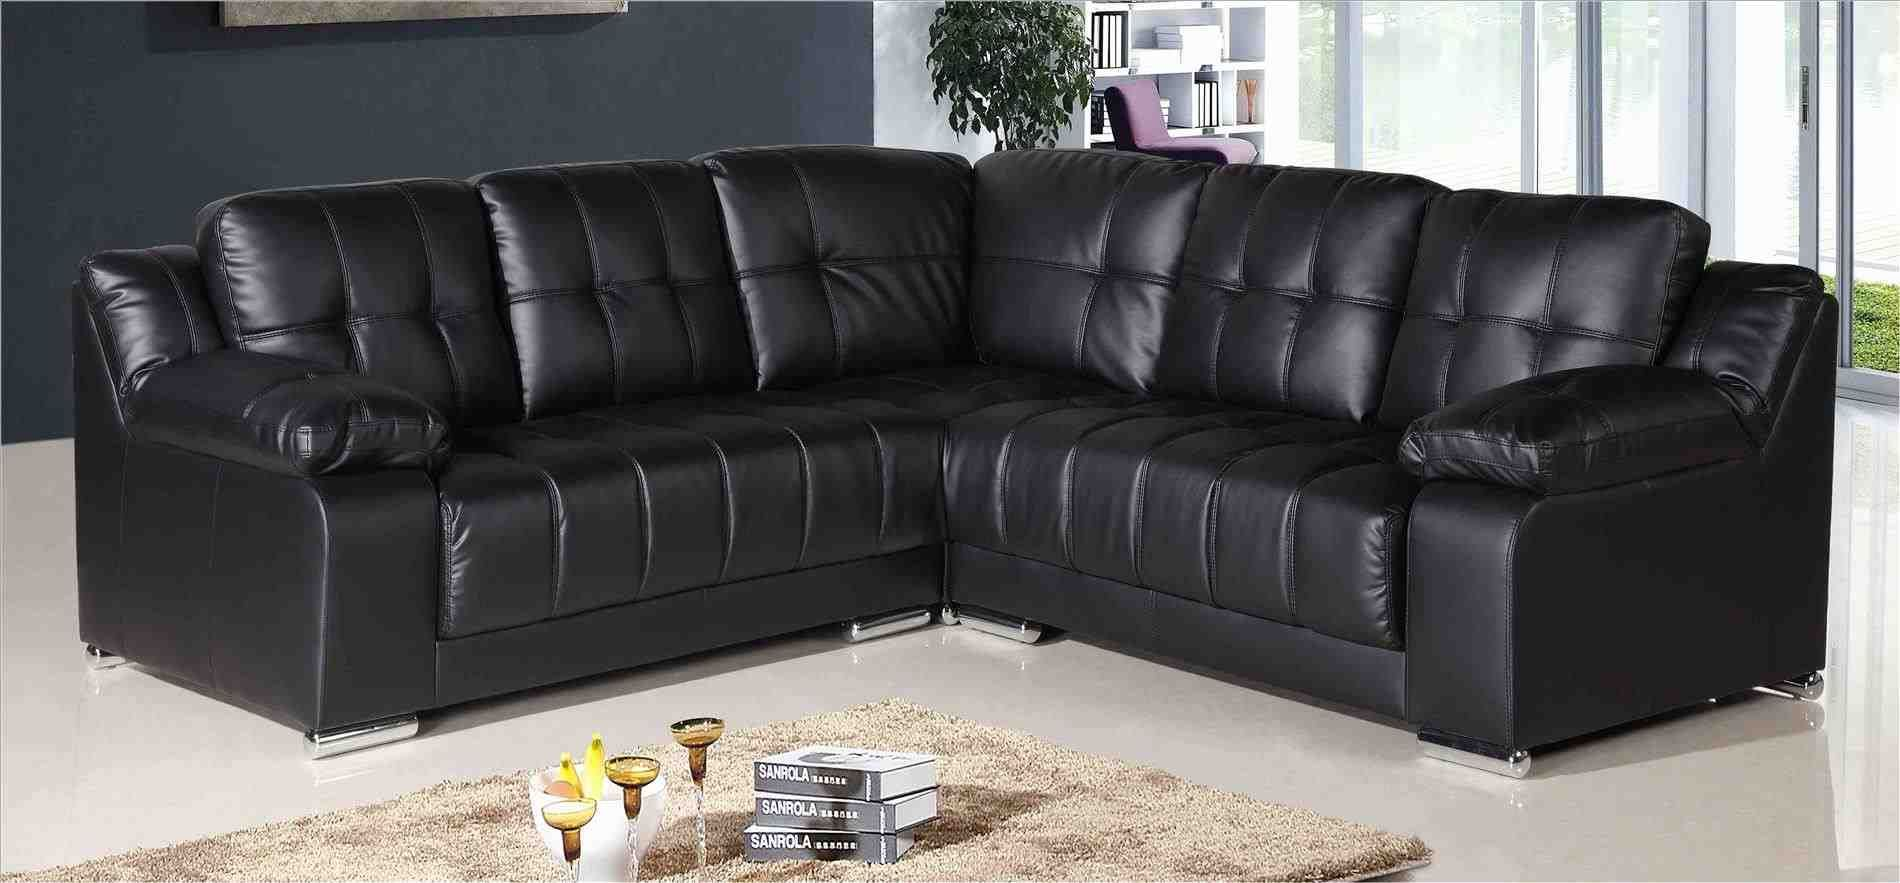 Sofa London Archive With Tag Where To Sofas In Living Room Furniture Ontario Elegant